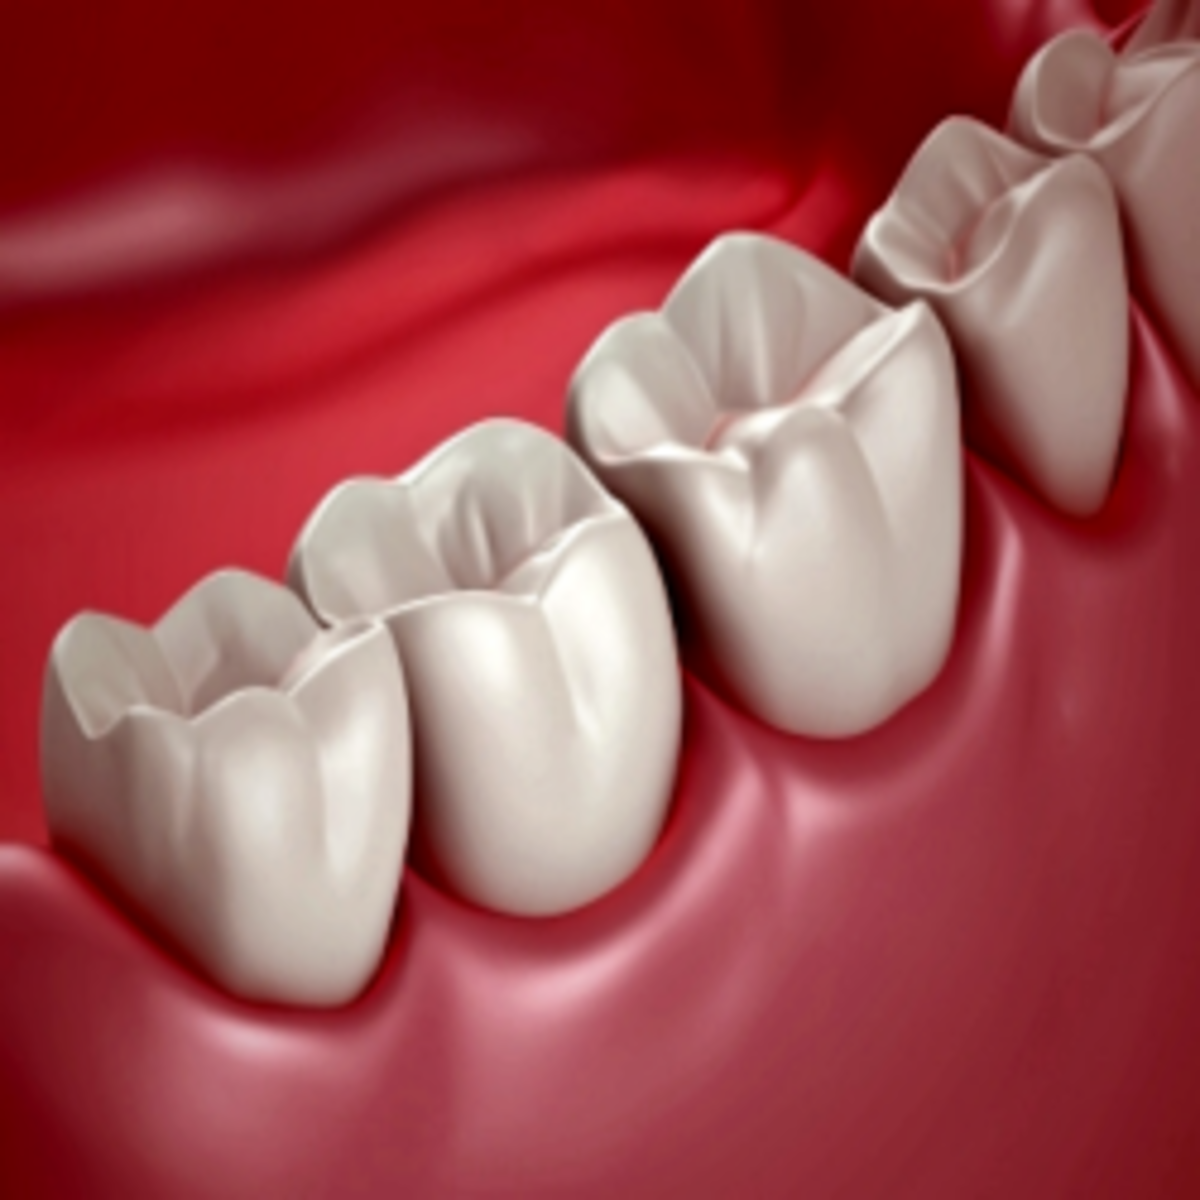 Wisdom Teeth Extraction Recovery Tips